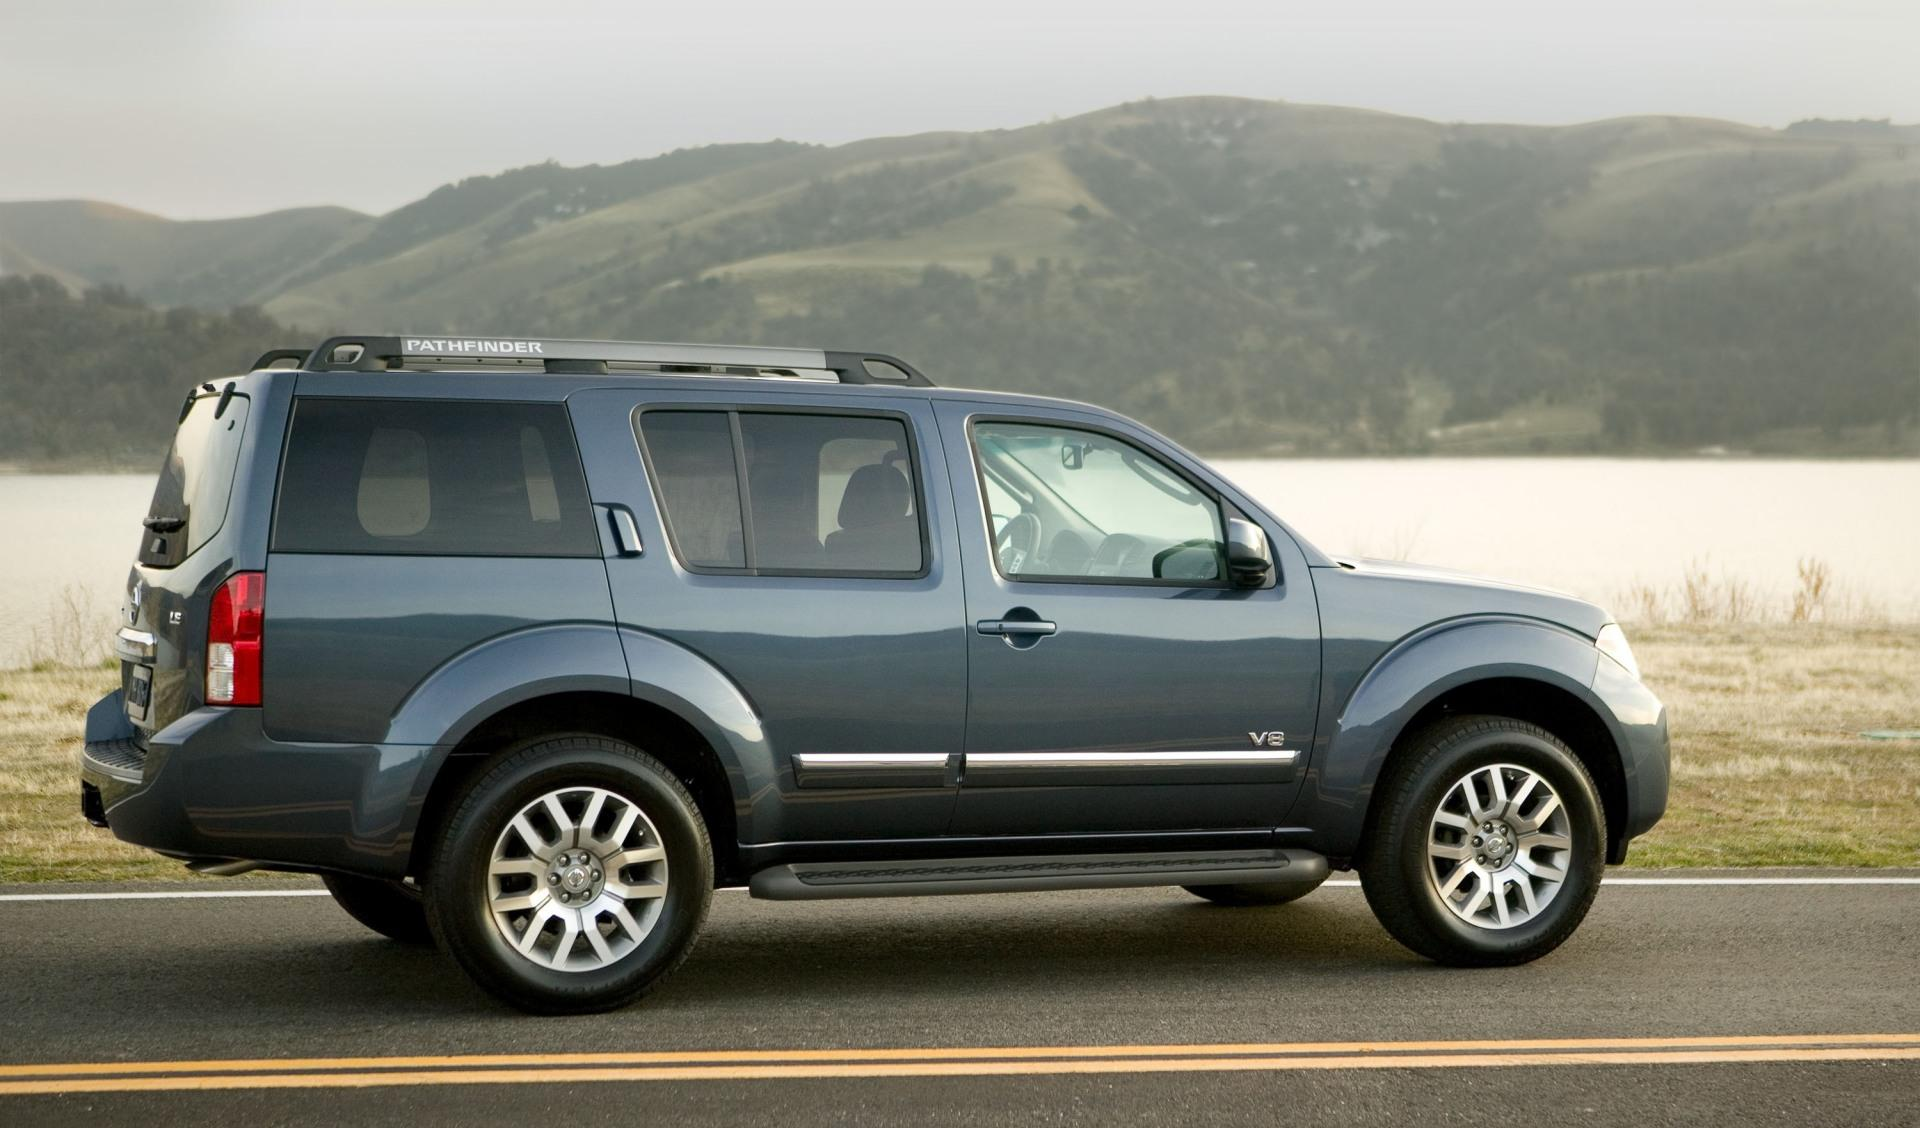 2009 Nissan Pathfinder News and Information